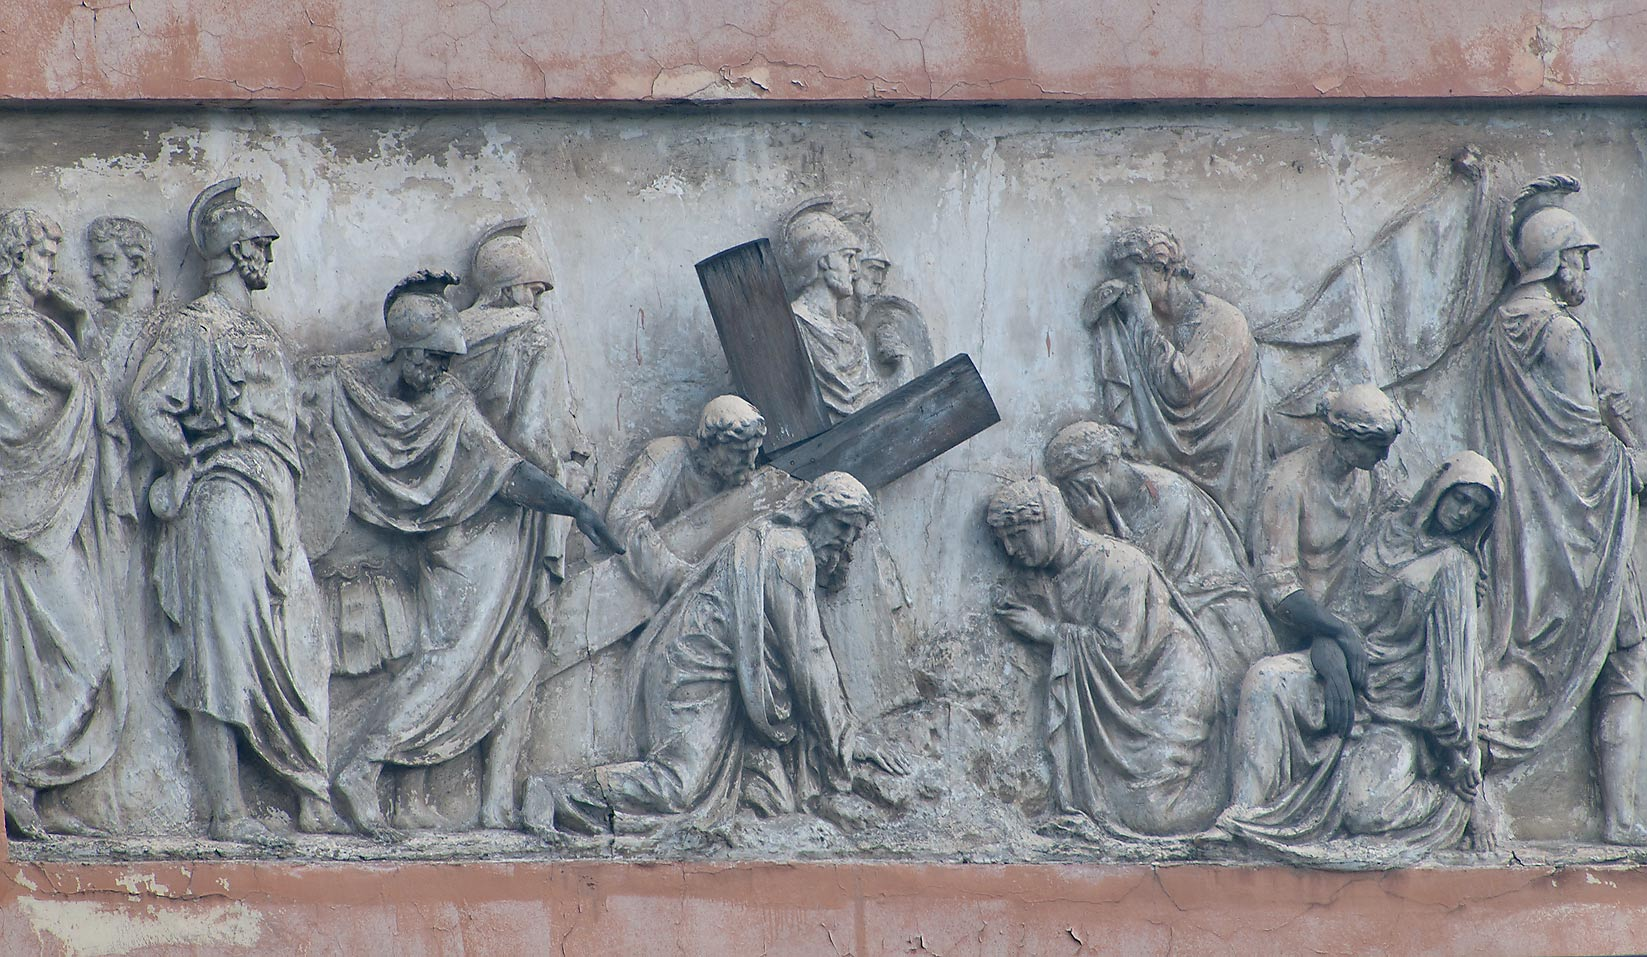 Scene from Bible at the top of a building, near Griboedova Canal. St.Petersburg, Russia